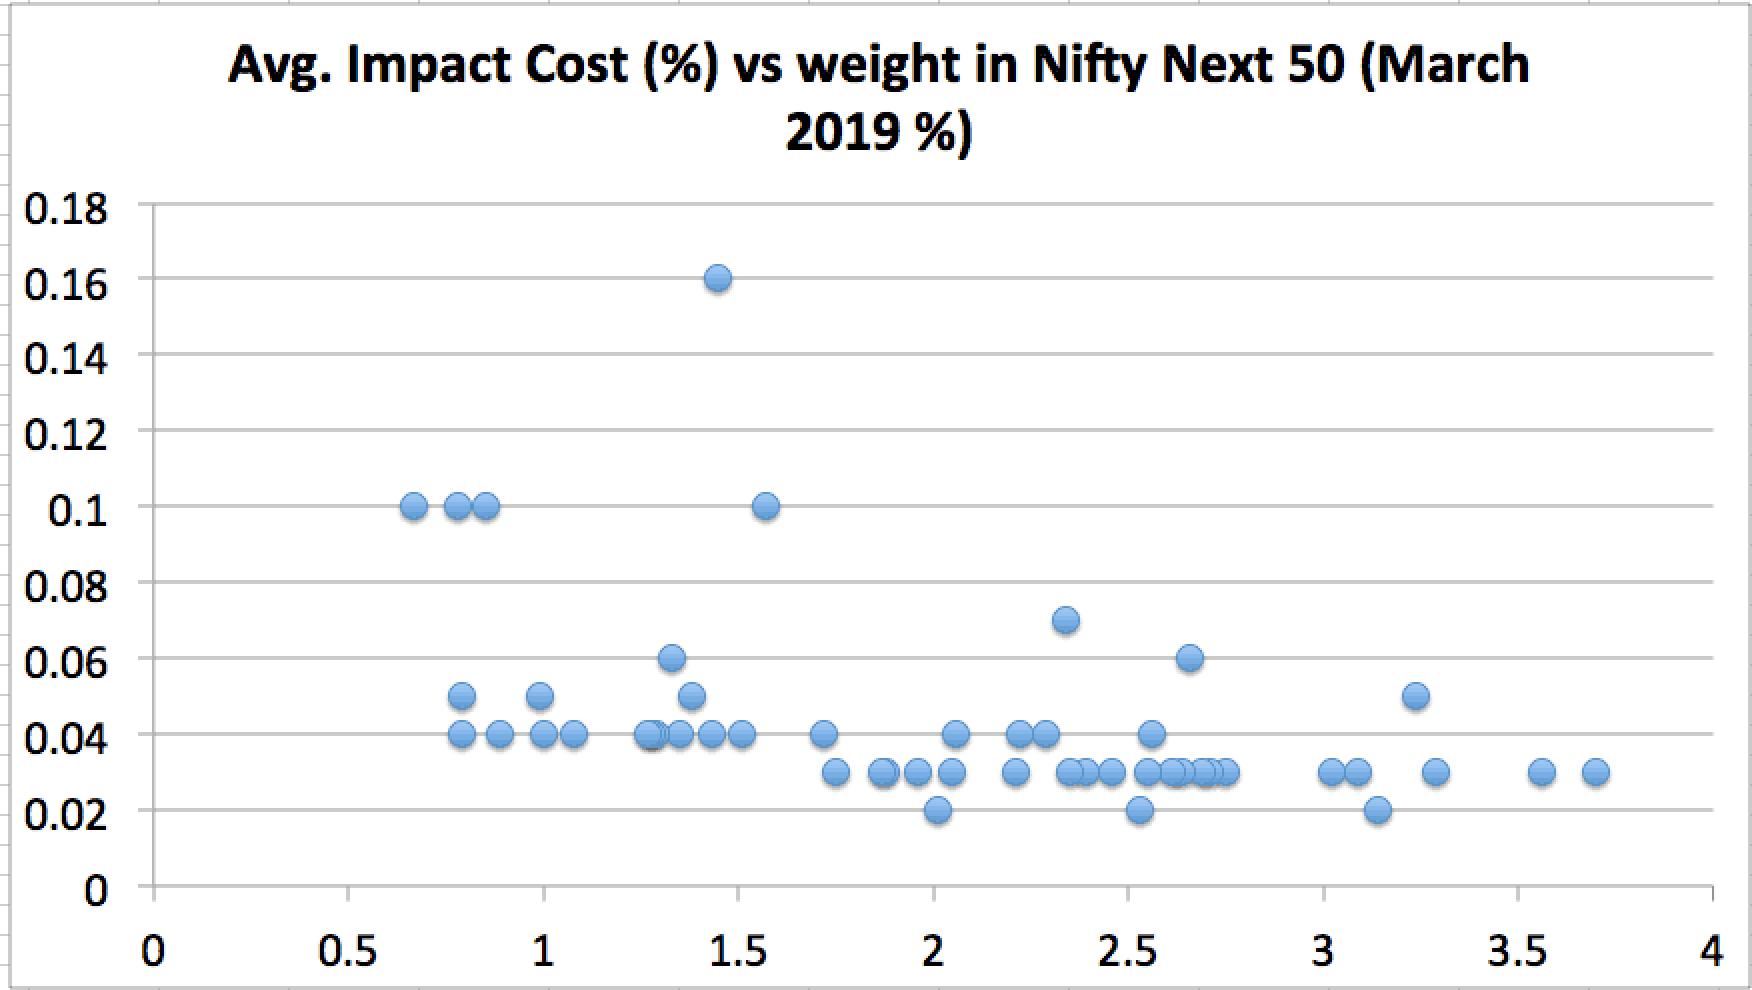 Impact cost of Nifty Next 50 stocks (March 2019) vs weightage